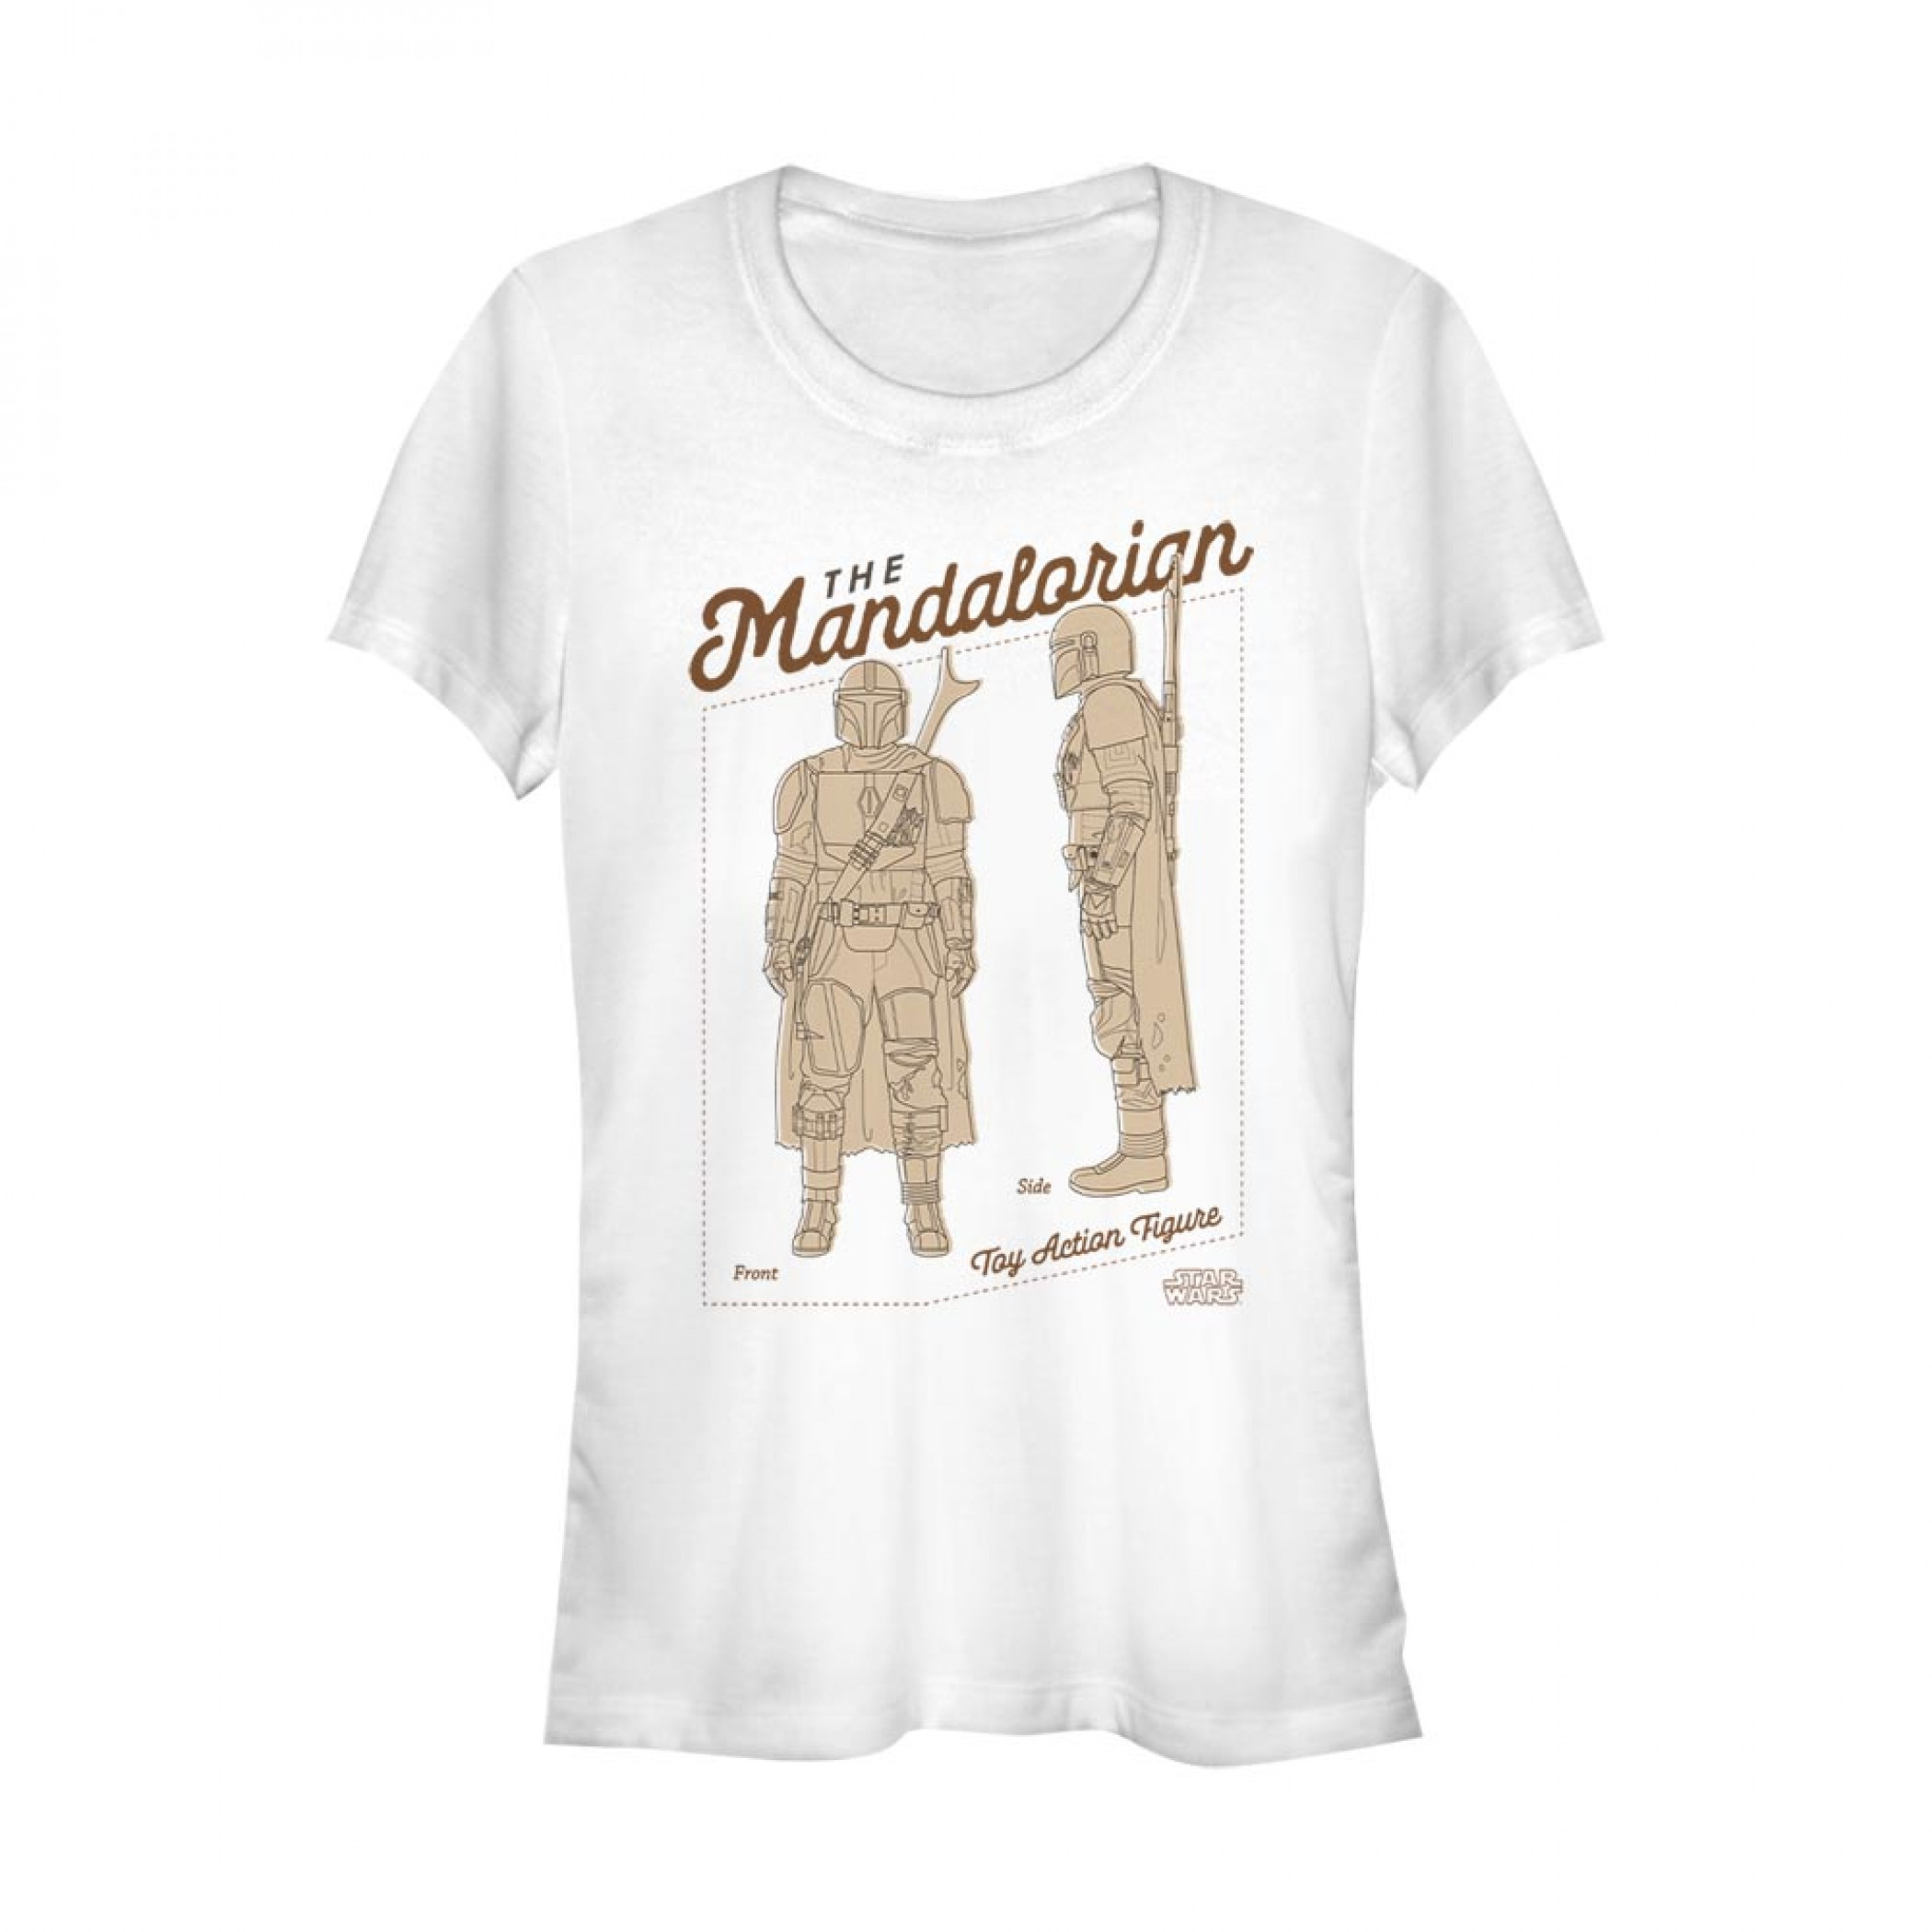 The Mandalorian Toy Figure Women's T-Shirt